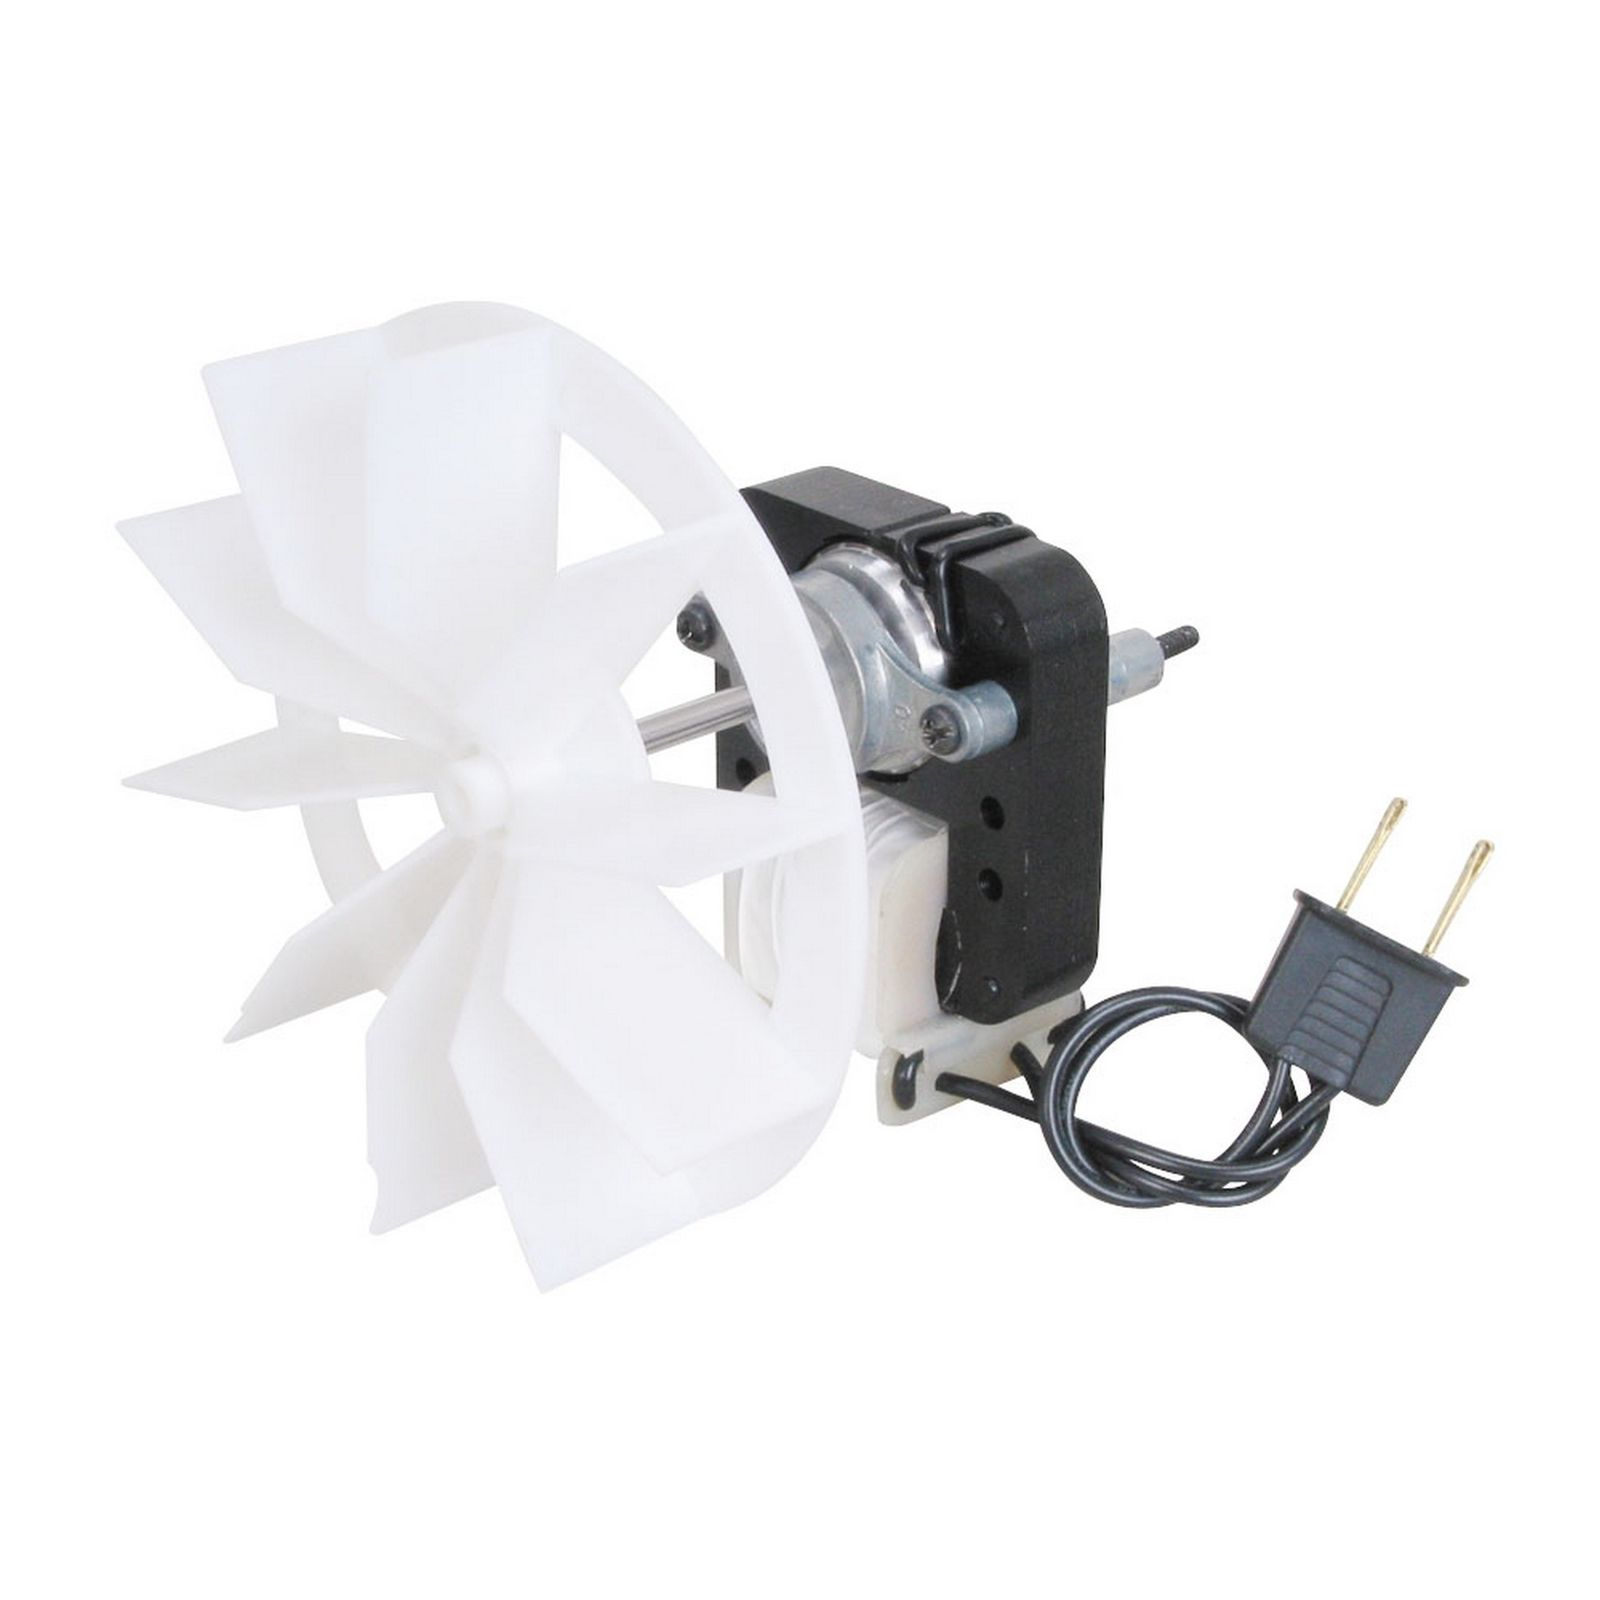 Bathroom Fan Electric Motor Replacement Kit for Broan Nutone